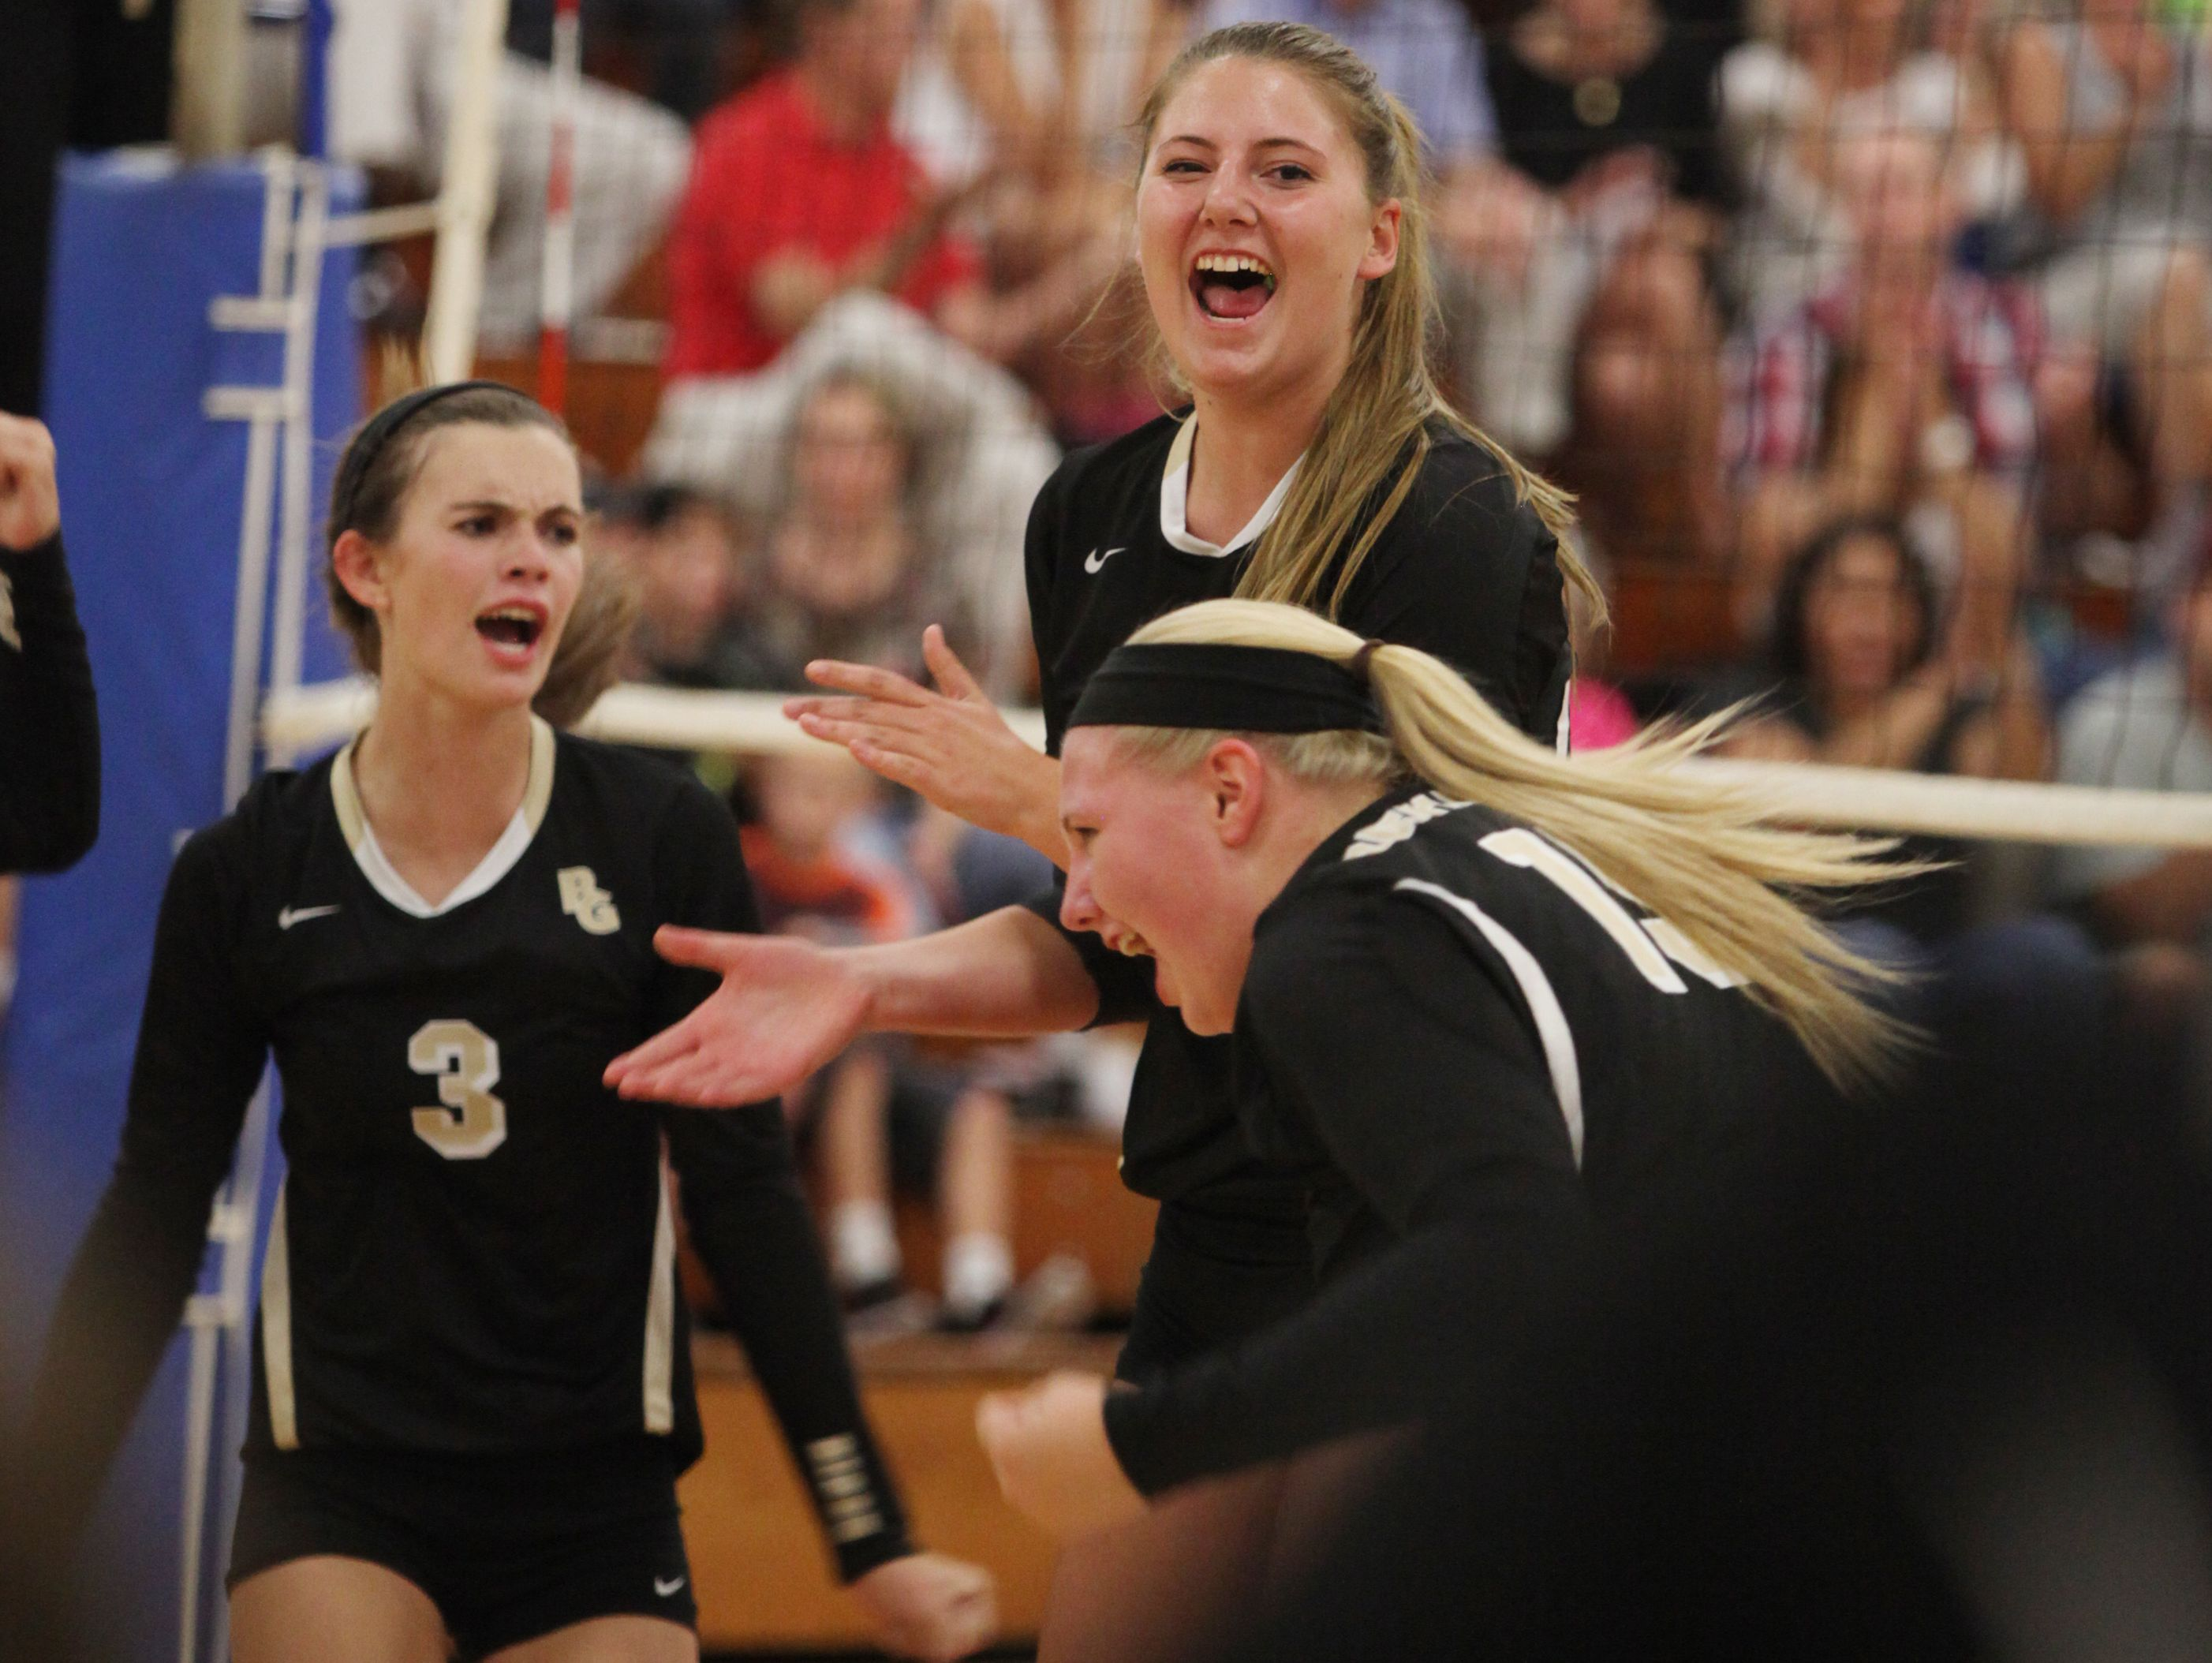 Buffalo Gap's Emily Hanger, center, celebrates with teammates after Gap scored a point during Tuesday night's game at R.E. Lee in Staunton on Aug. 30, 2016.